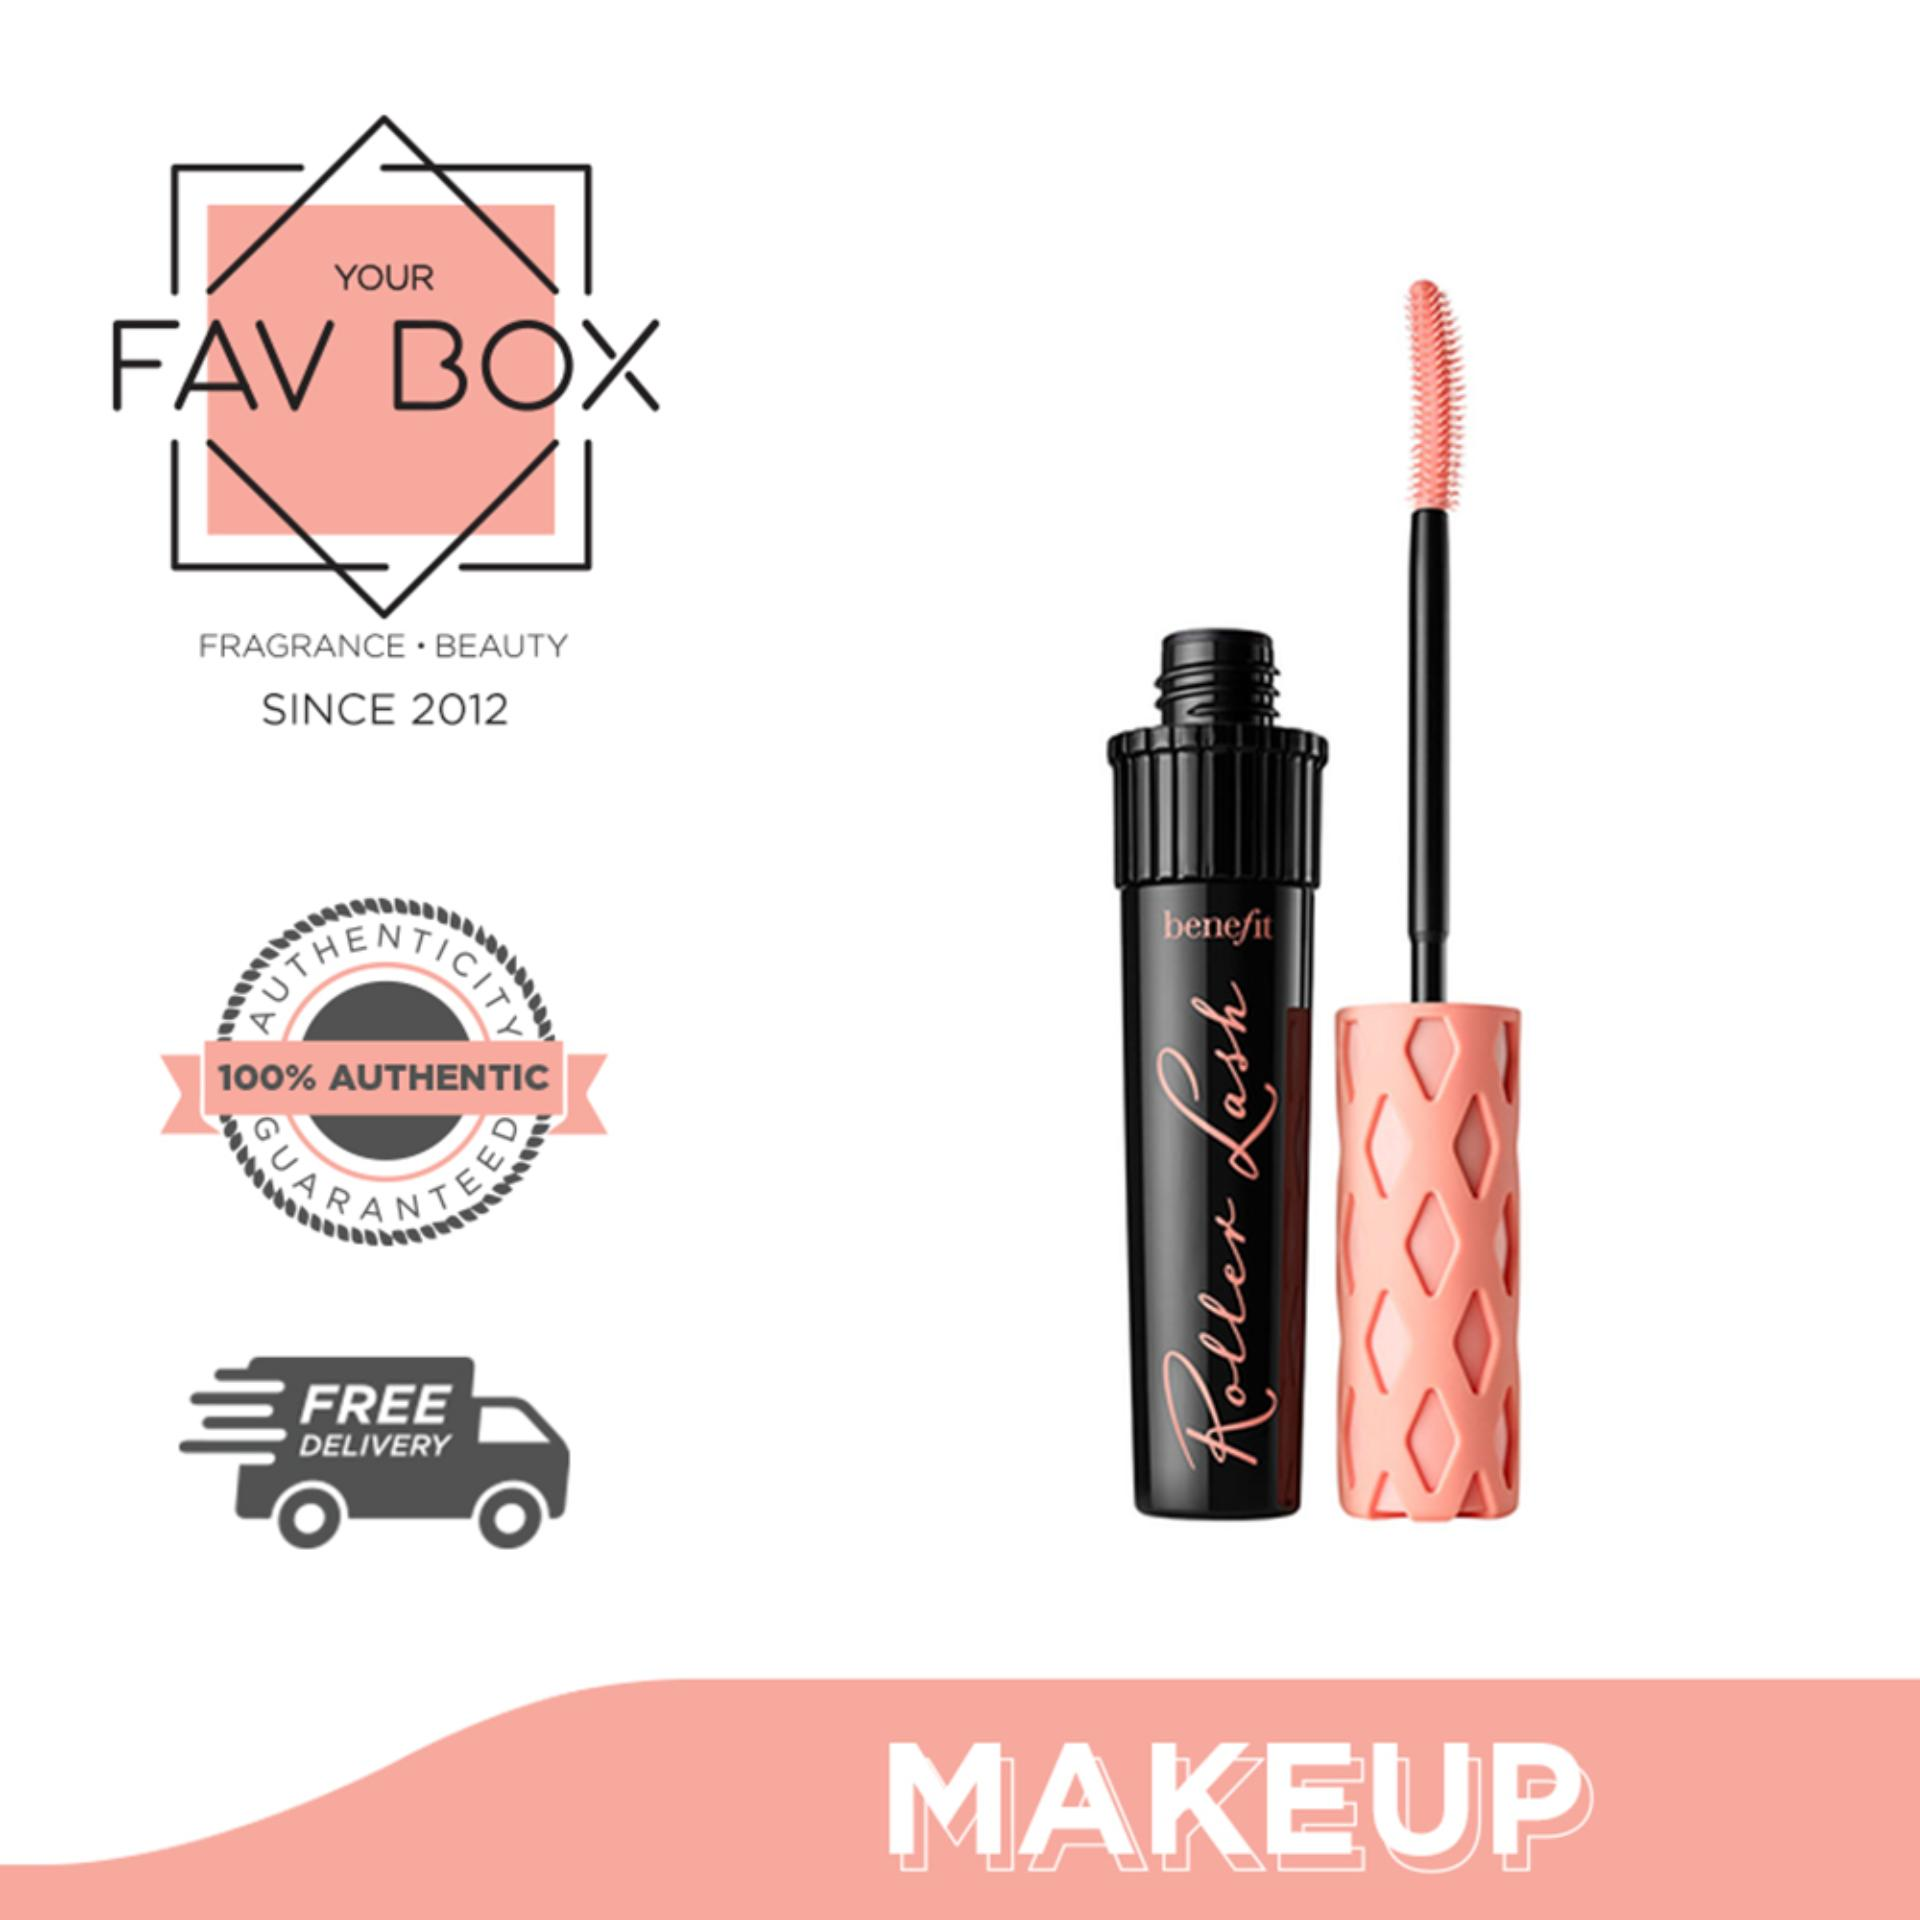 2473142dc8a Benefit Cosmetics Philippines - Benefit Cosmetics Mascaras for sale ...